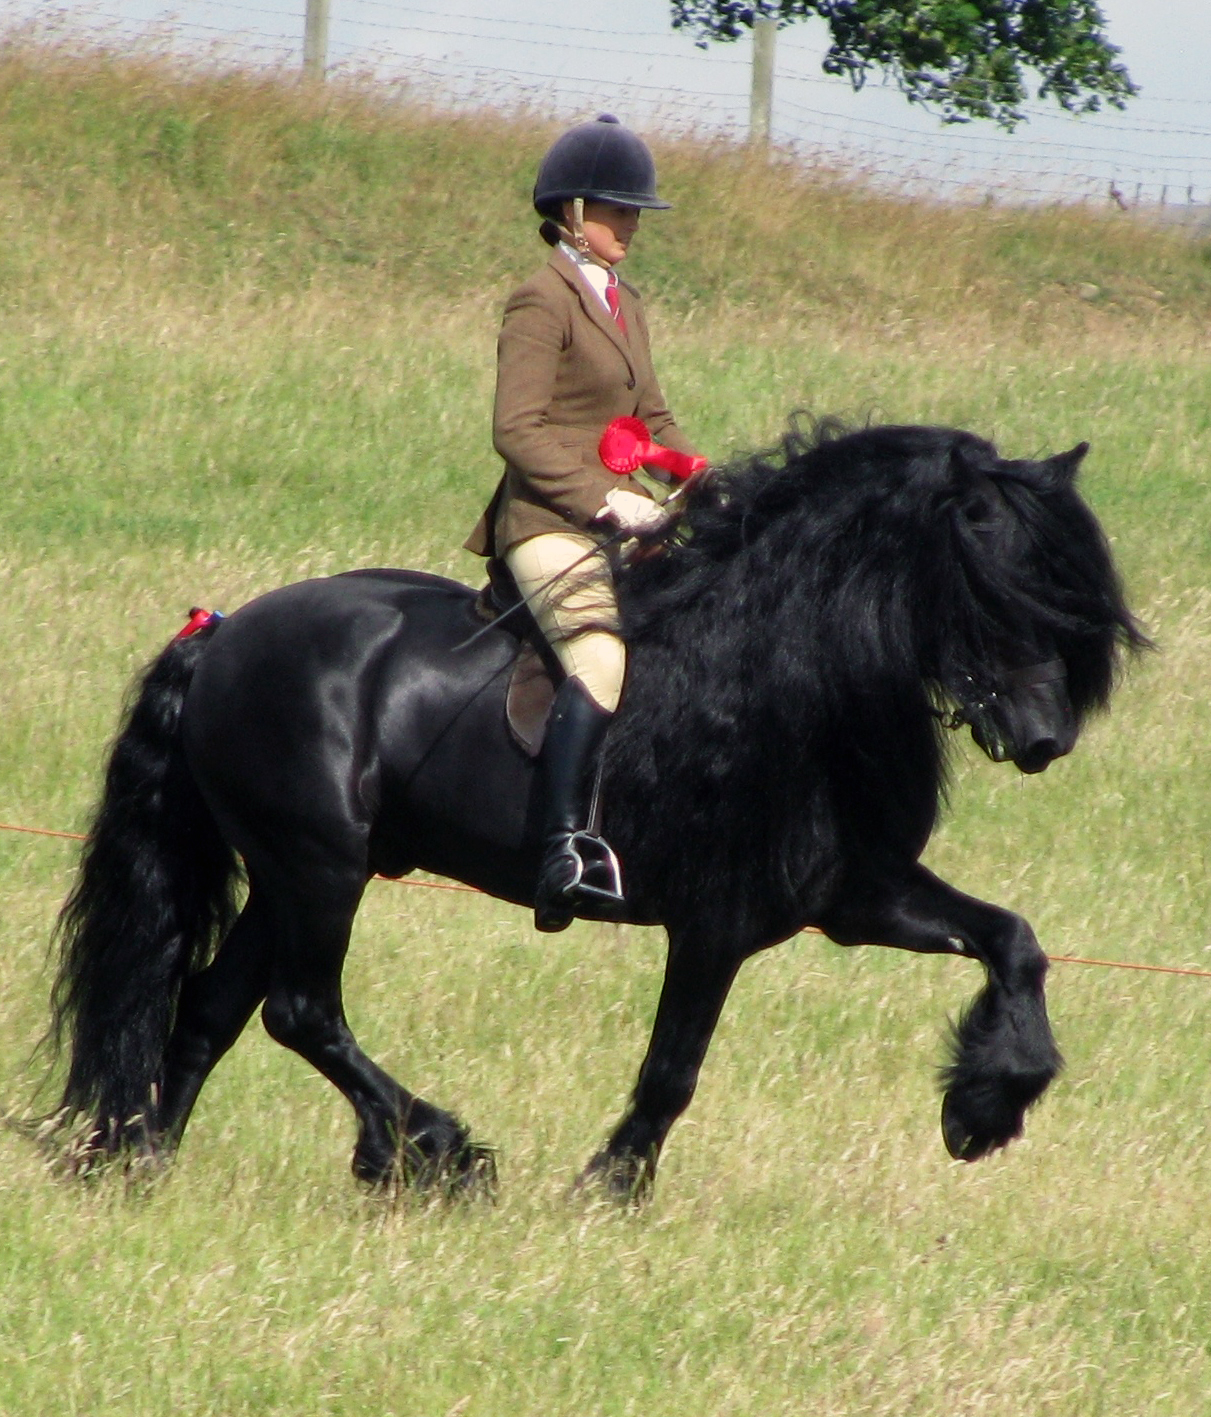 Dales Pony stallion being ridden